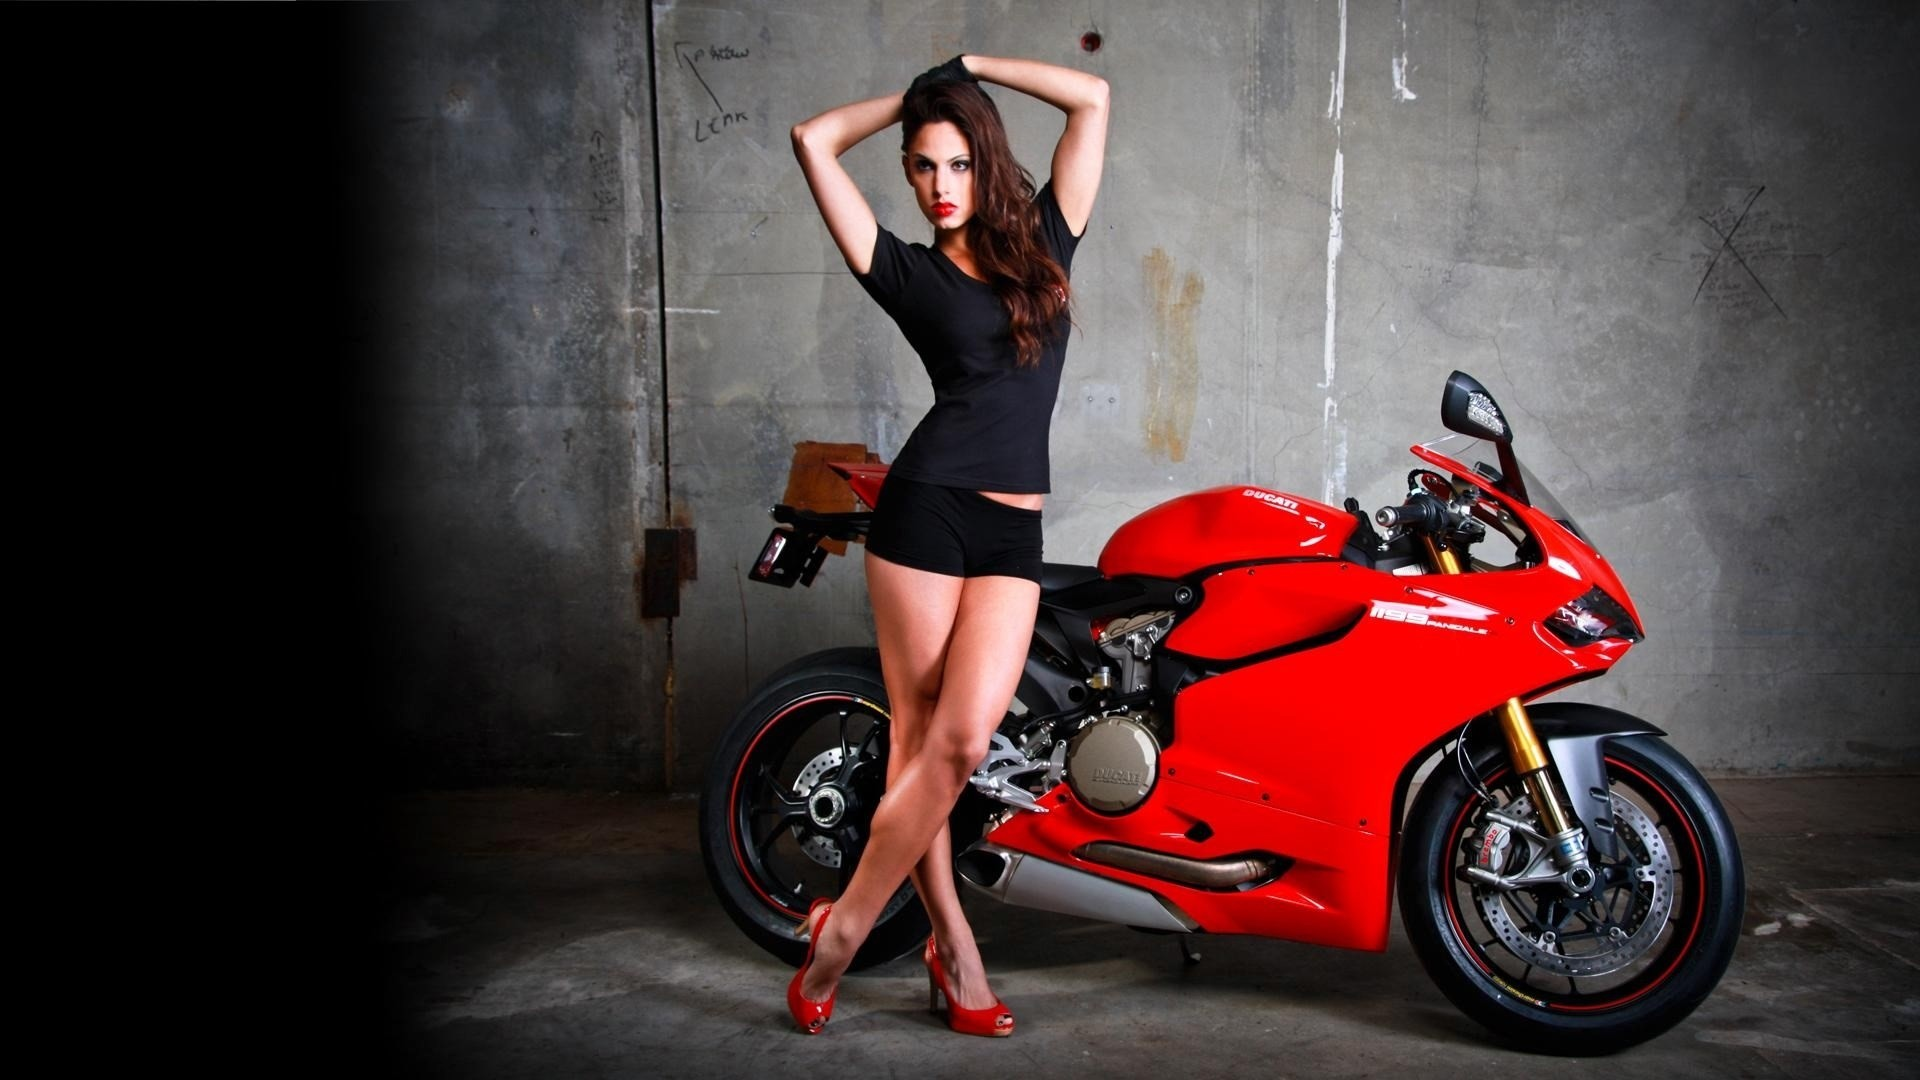 px free wallpaper and screensavers for girls and motorcycles by  Tarzan Bishop for – PKF